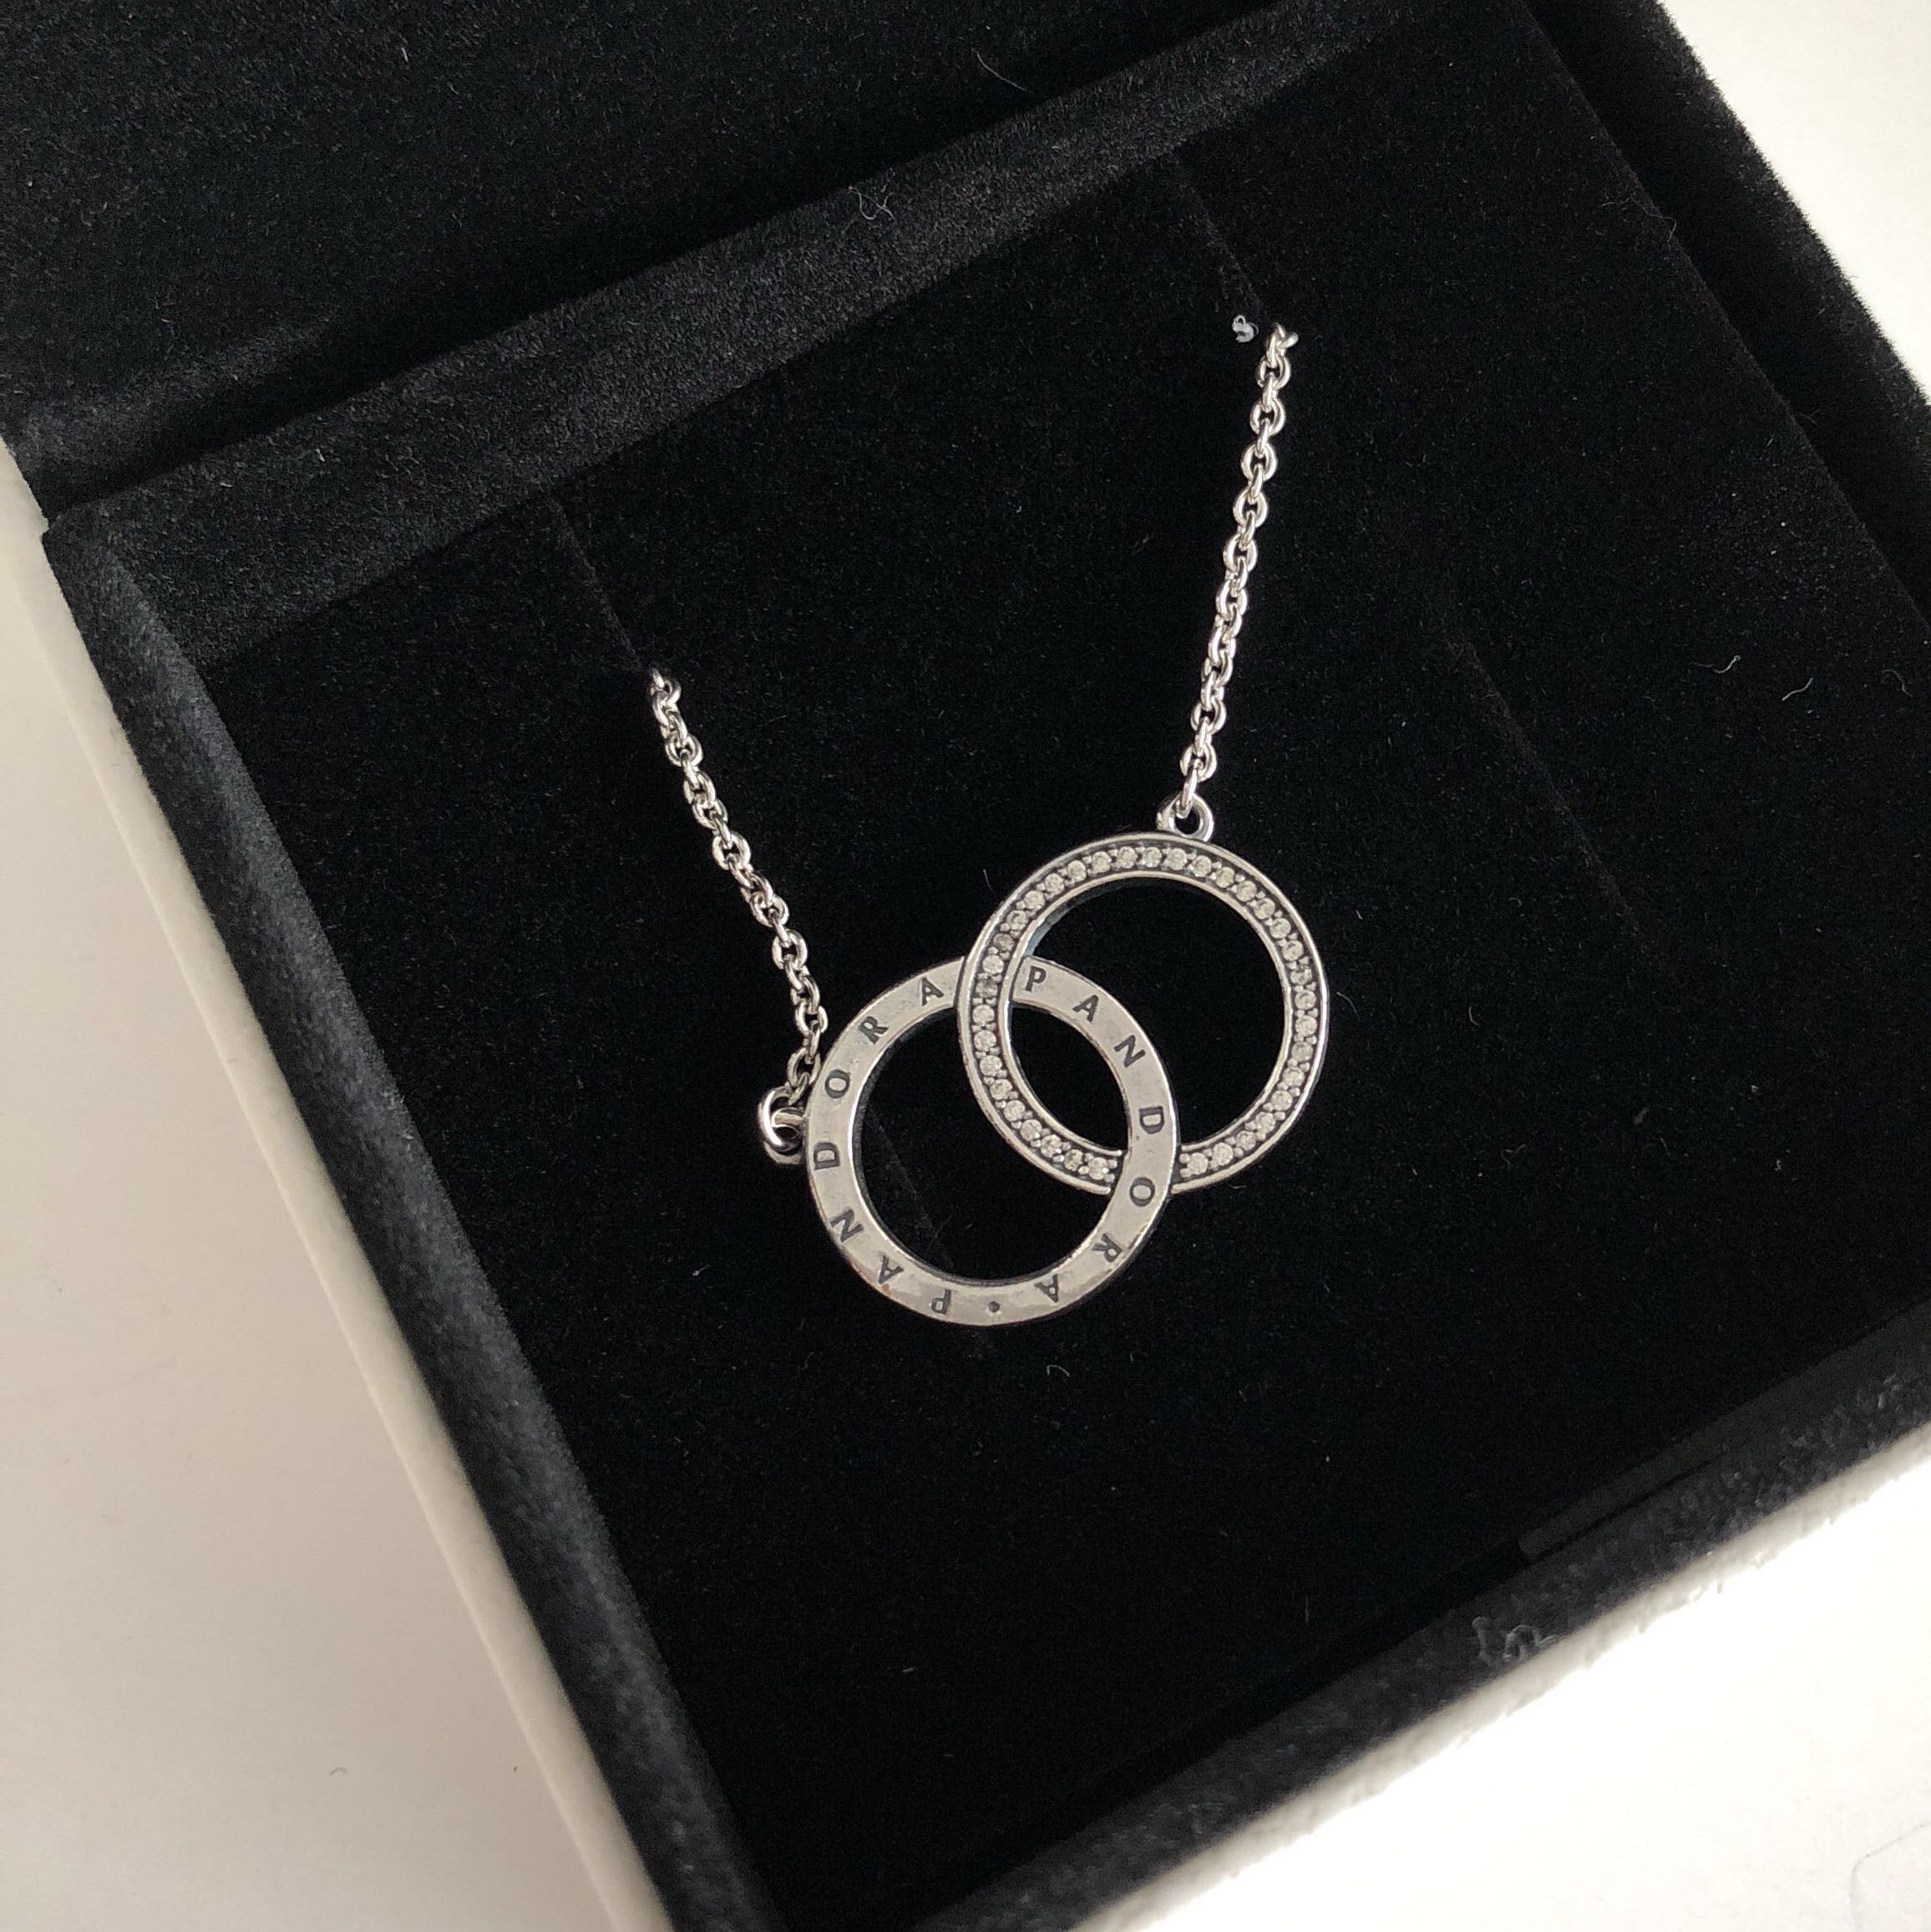 Pandora Circles Necklace, Luxury, Accessories On Carousell Pertaining To Latest Pandora Logo Circle Necklaces (Gallery 22 of 25)